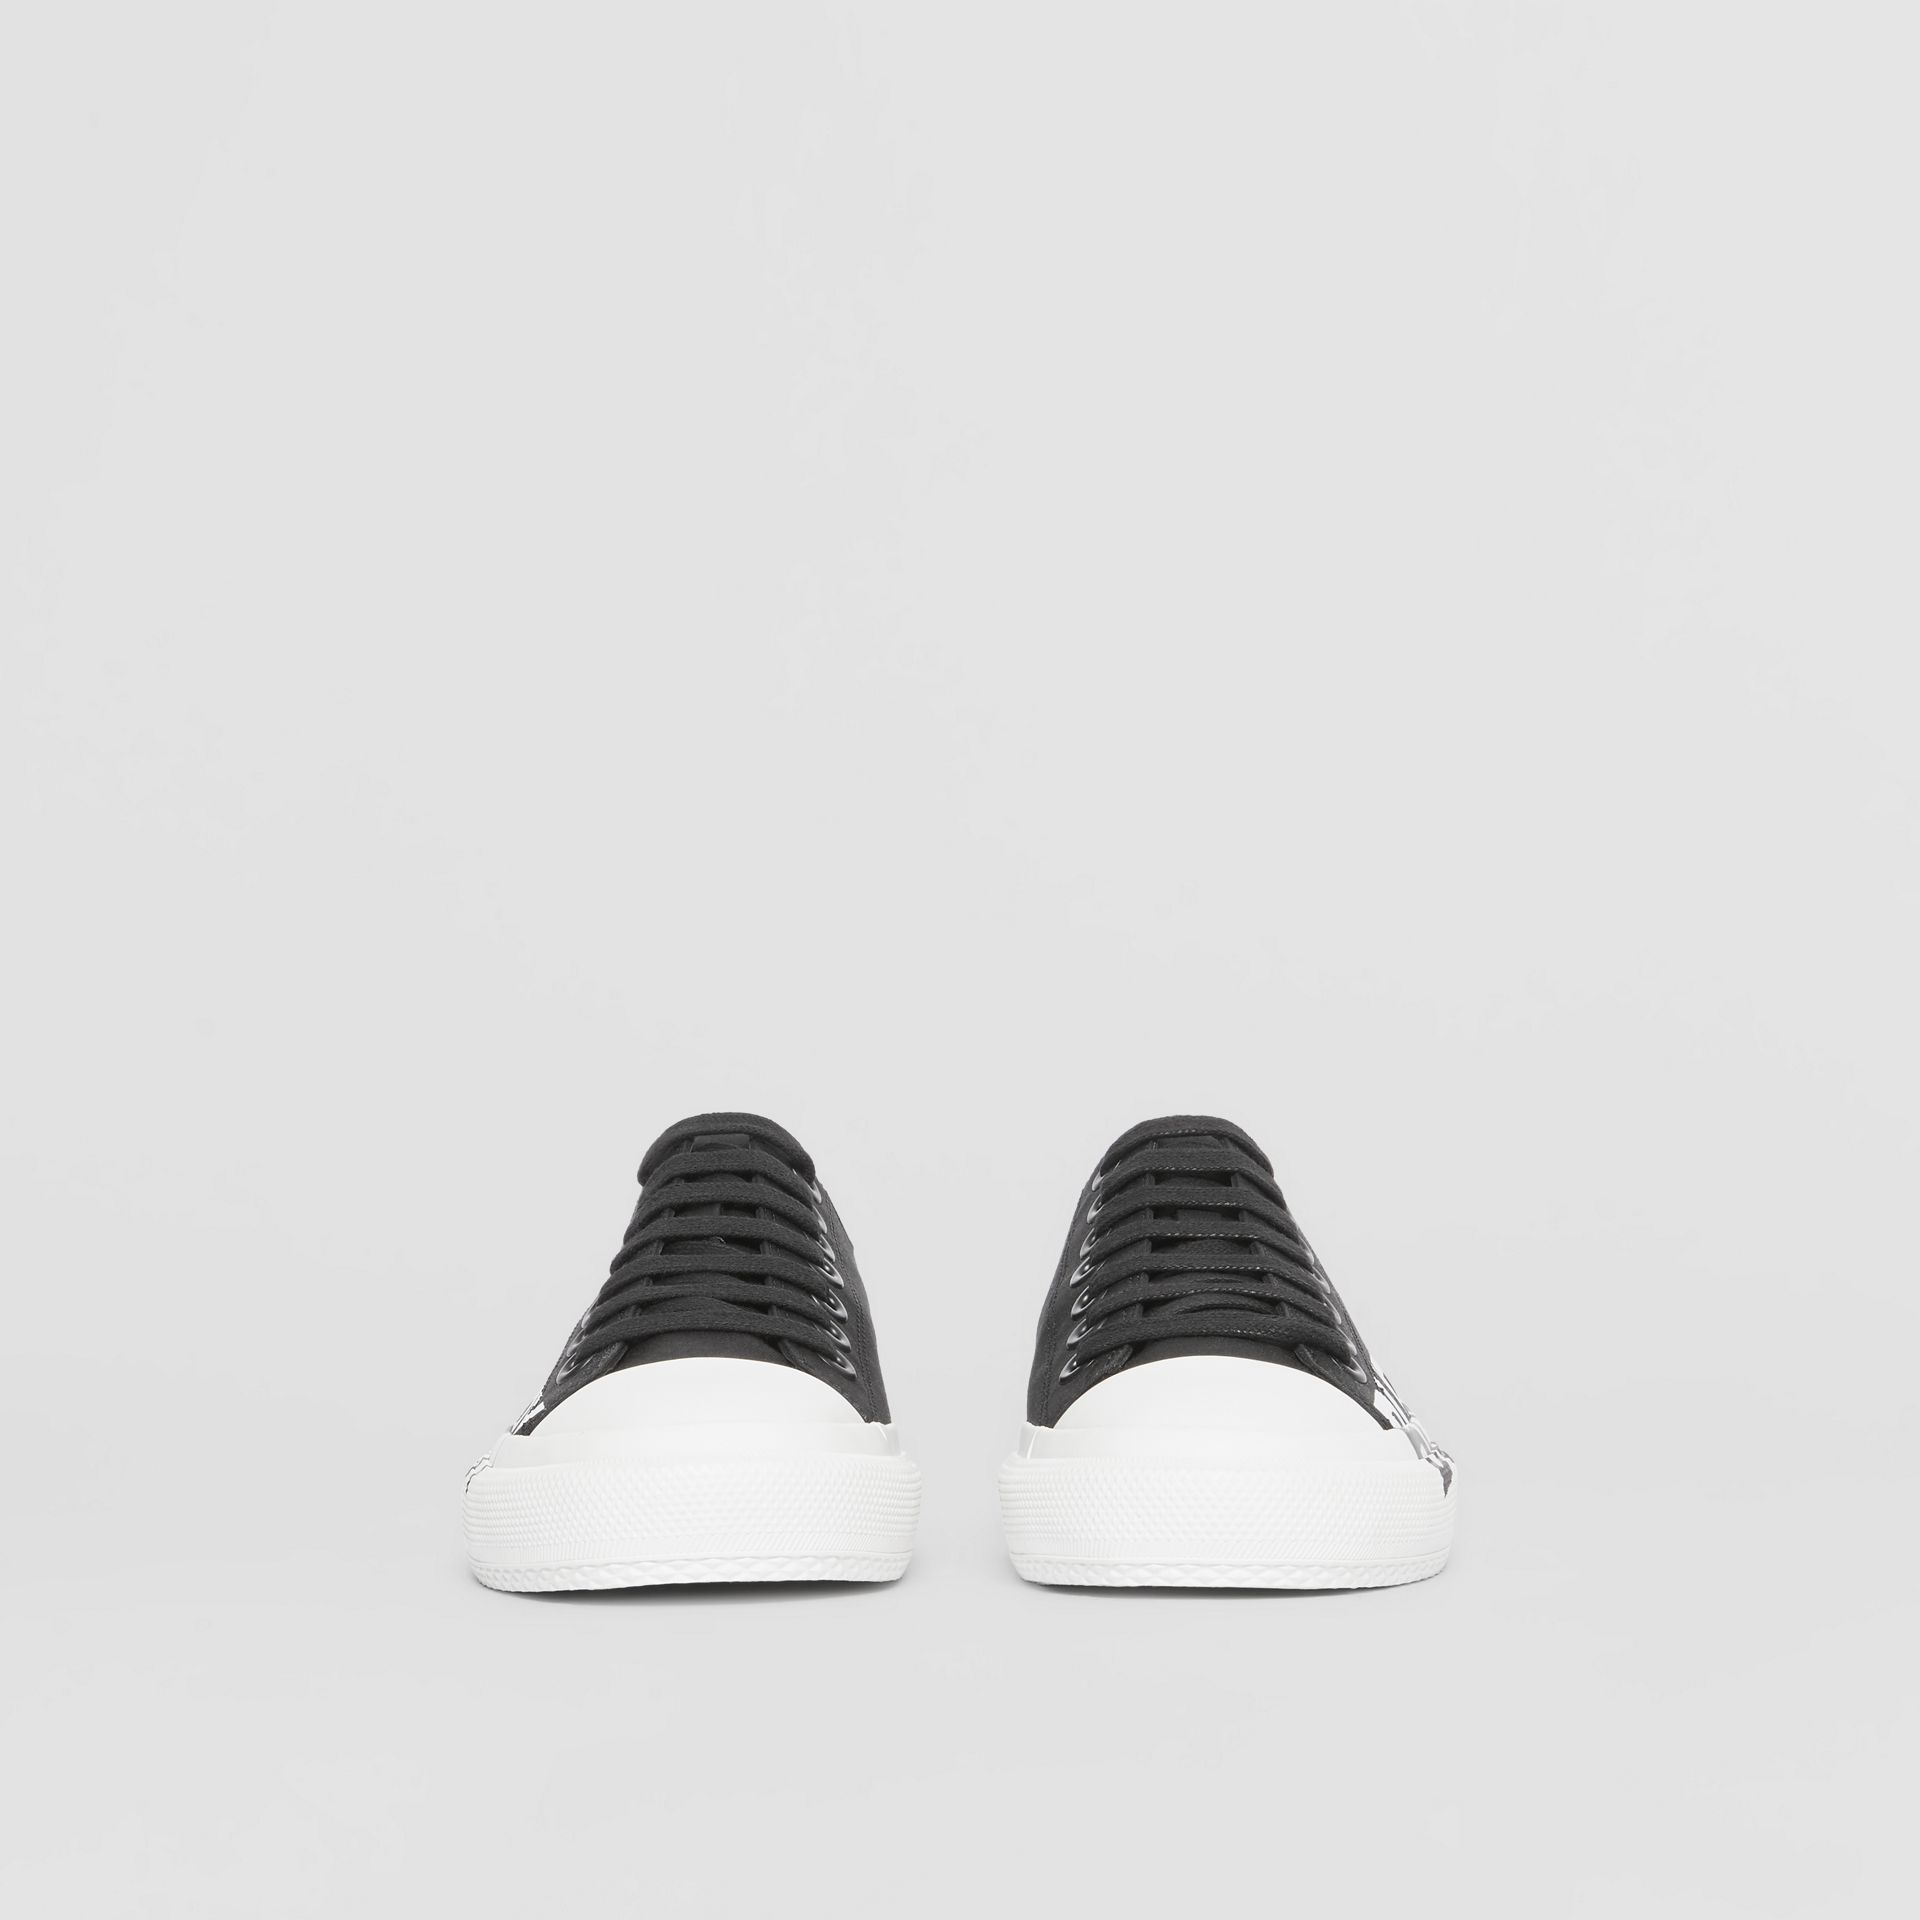 Logo Print Two-tone Cotton Gabardine Sneakers in Black/white - Women | Burberry Hong Kong S.A.R - gallery image 3